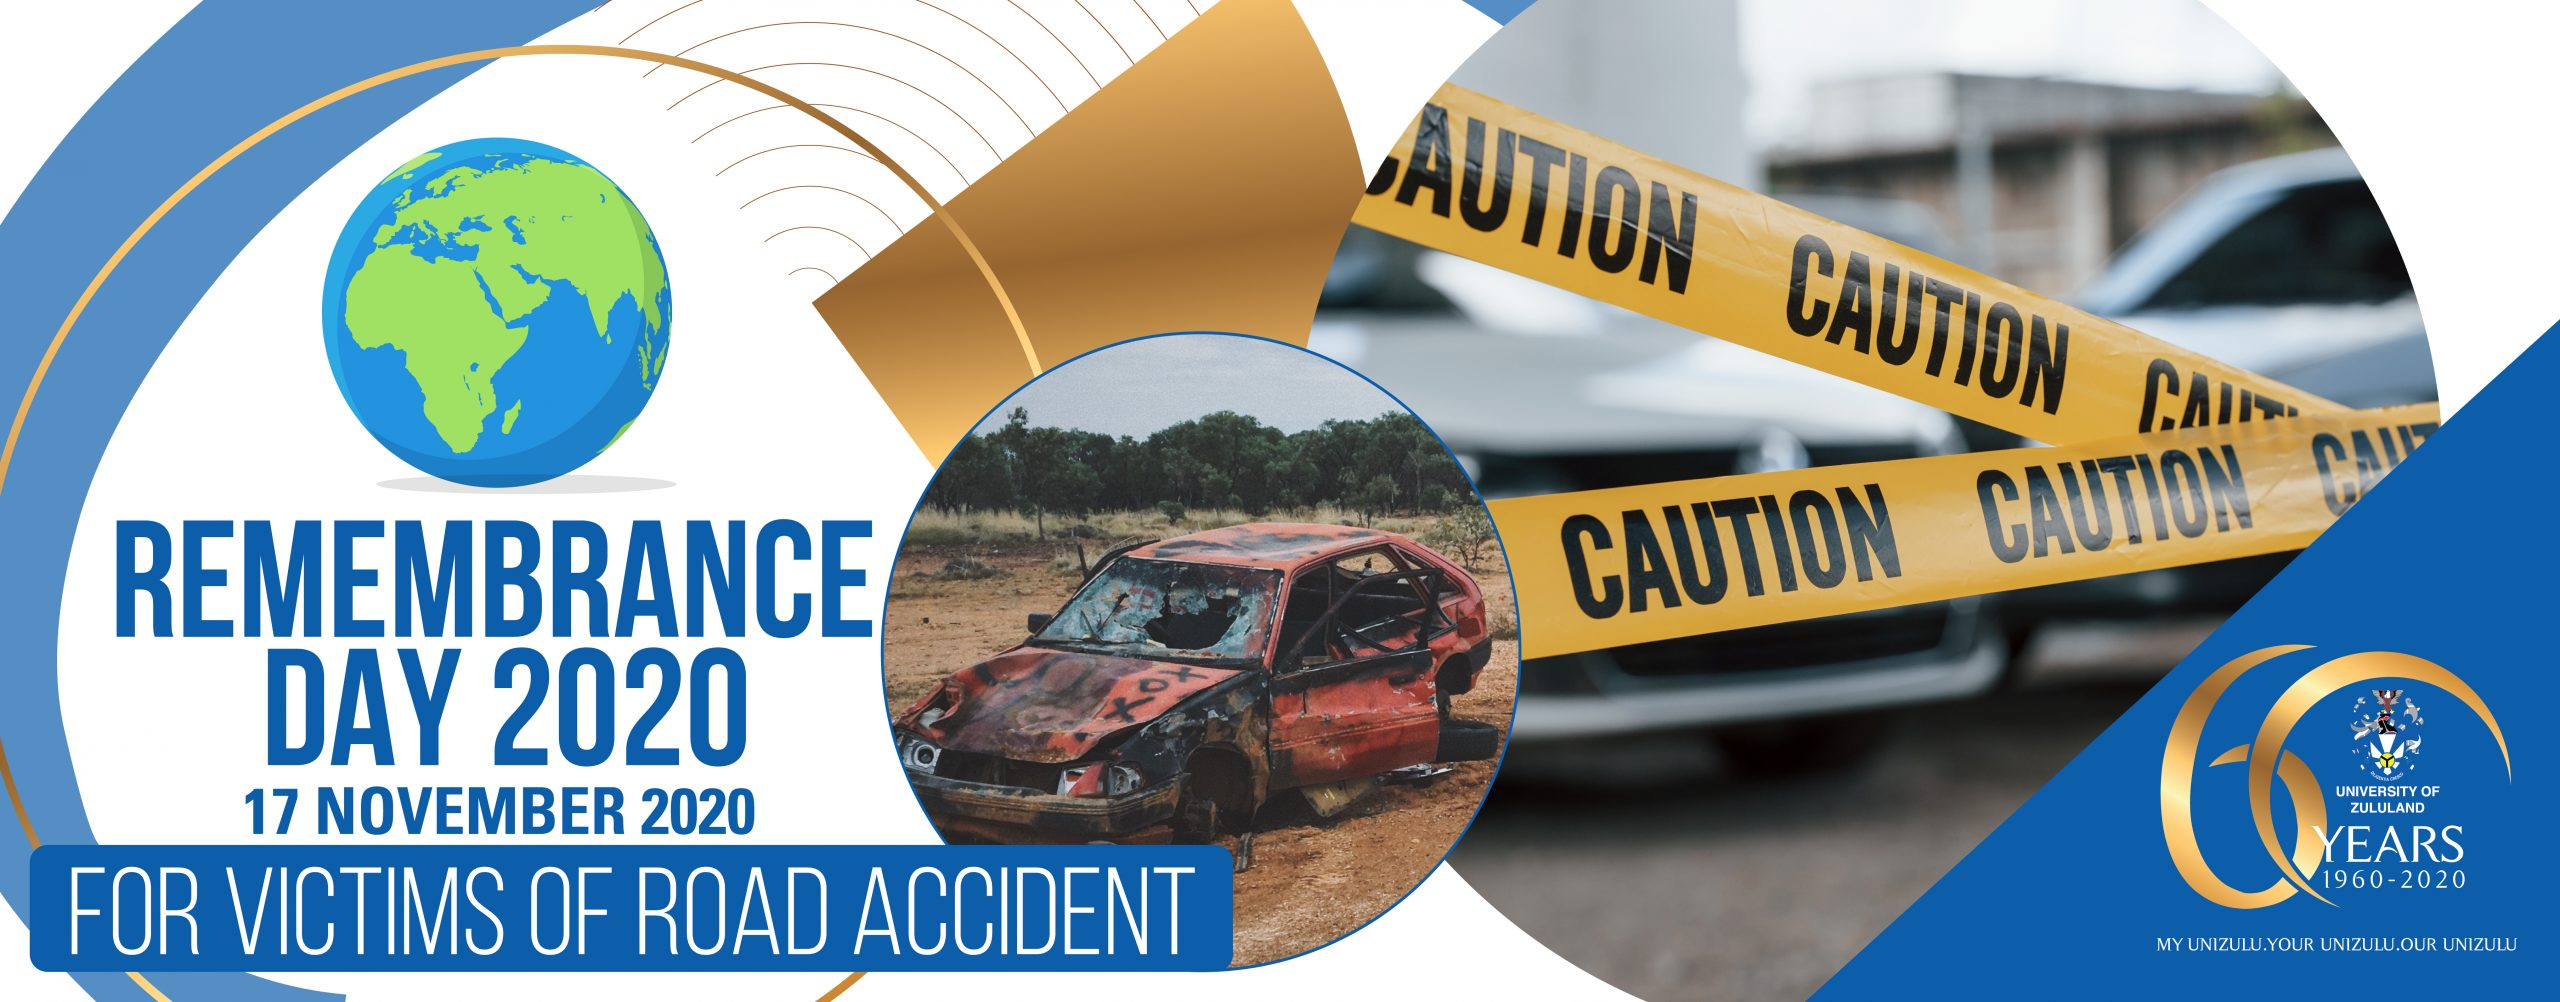 UNIZULU 17 Nov World Remembrance Day for Victims of Road Accidents-01